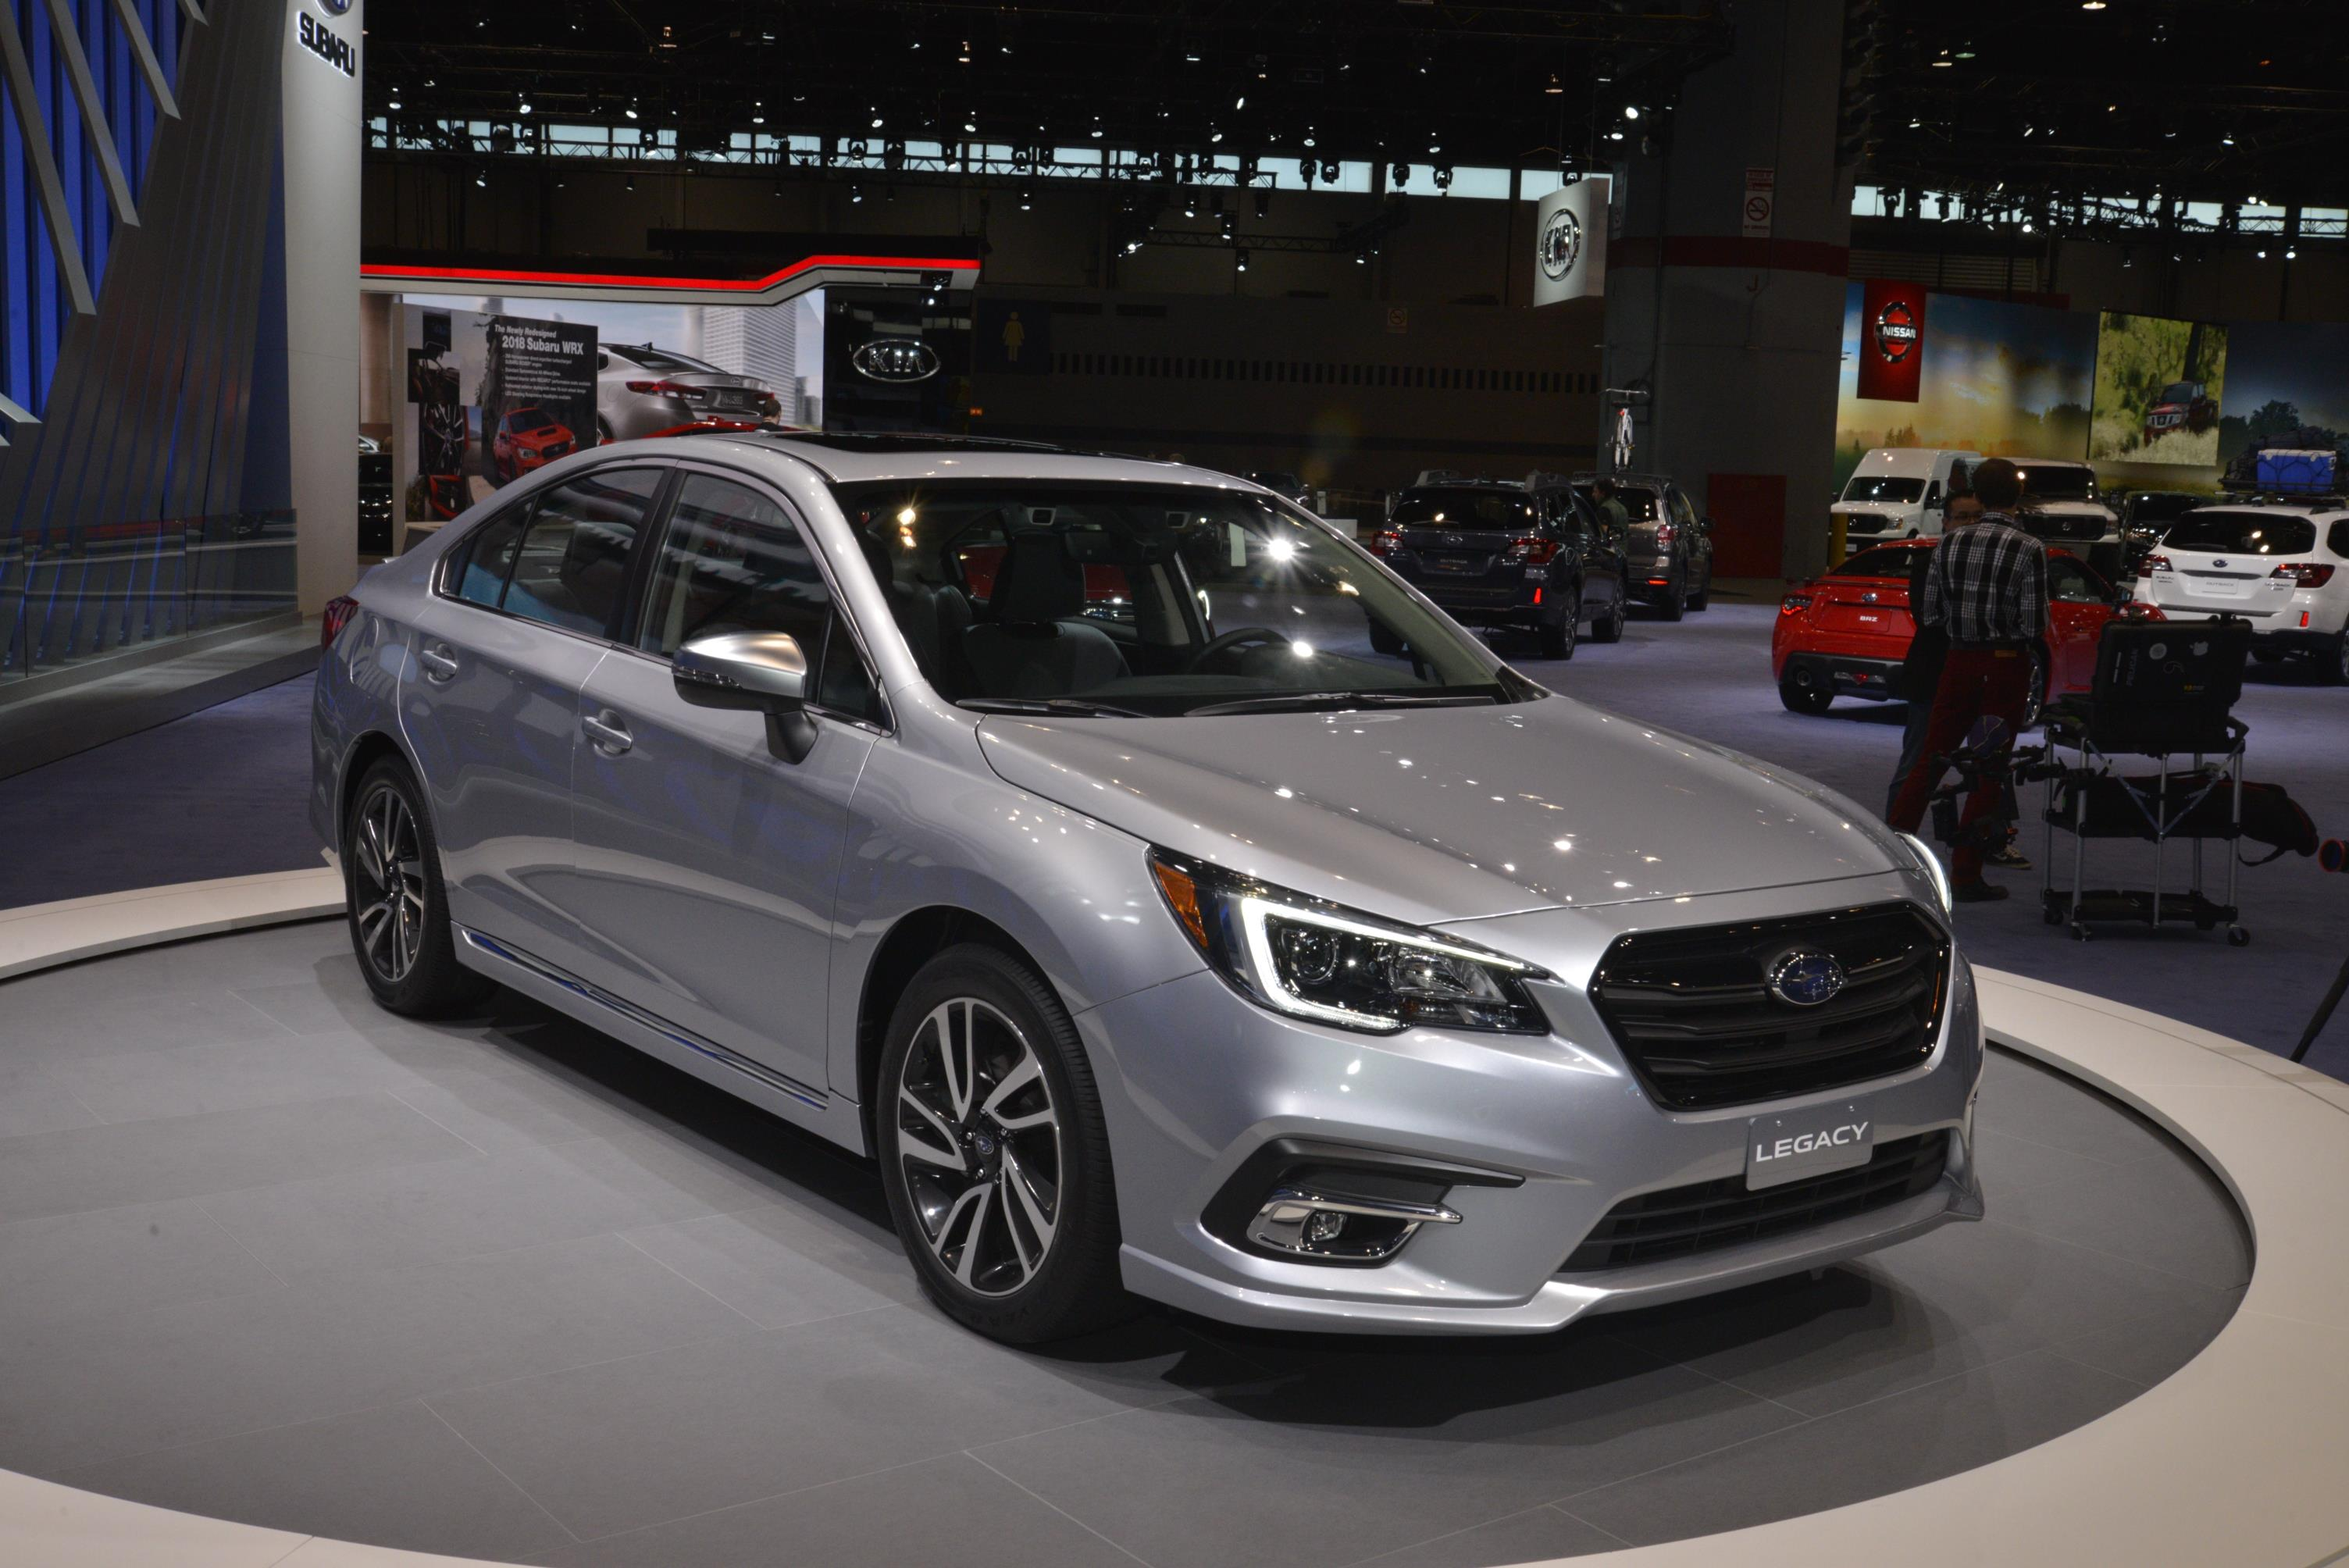 Subaru Neuheiten 2018 >> 2018 Subaru Legacy Has A Hint Of Impreza In Chicago Autoevolution